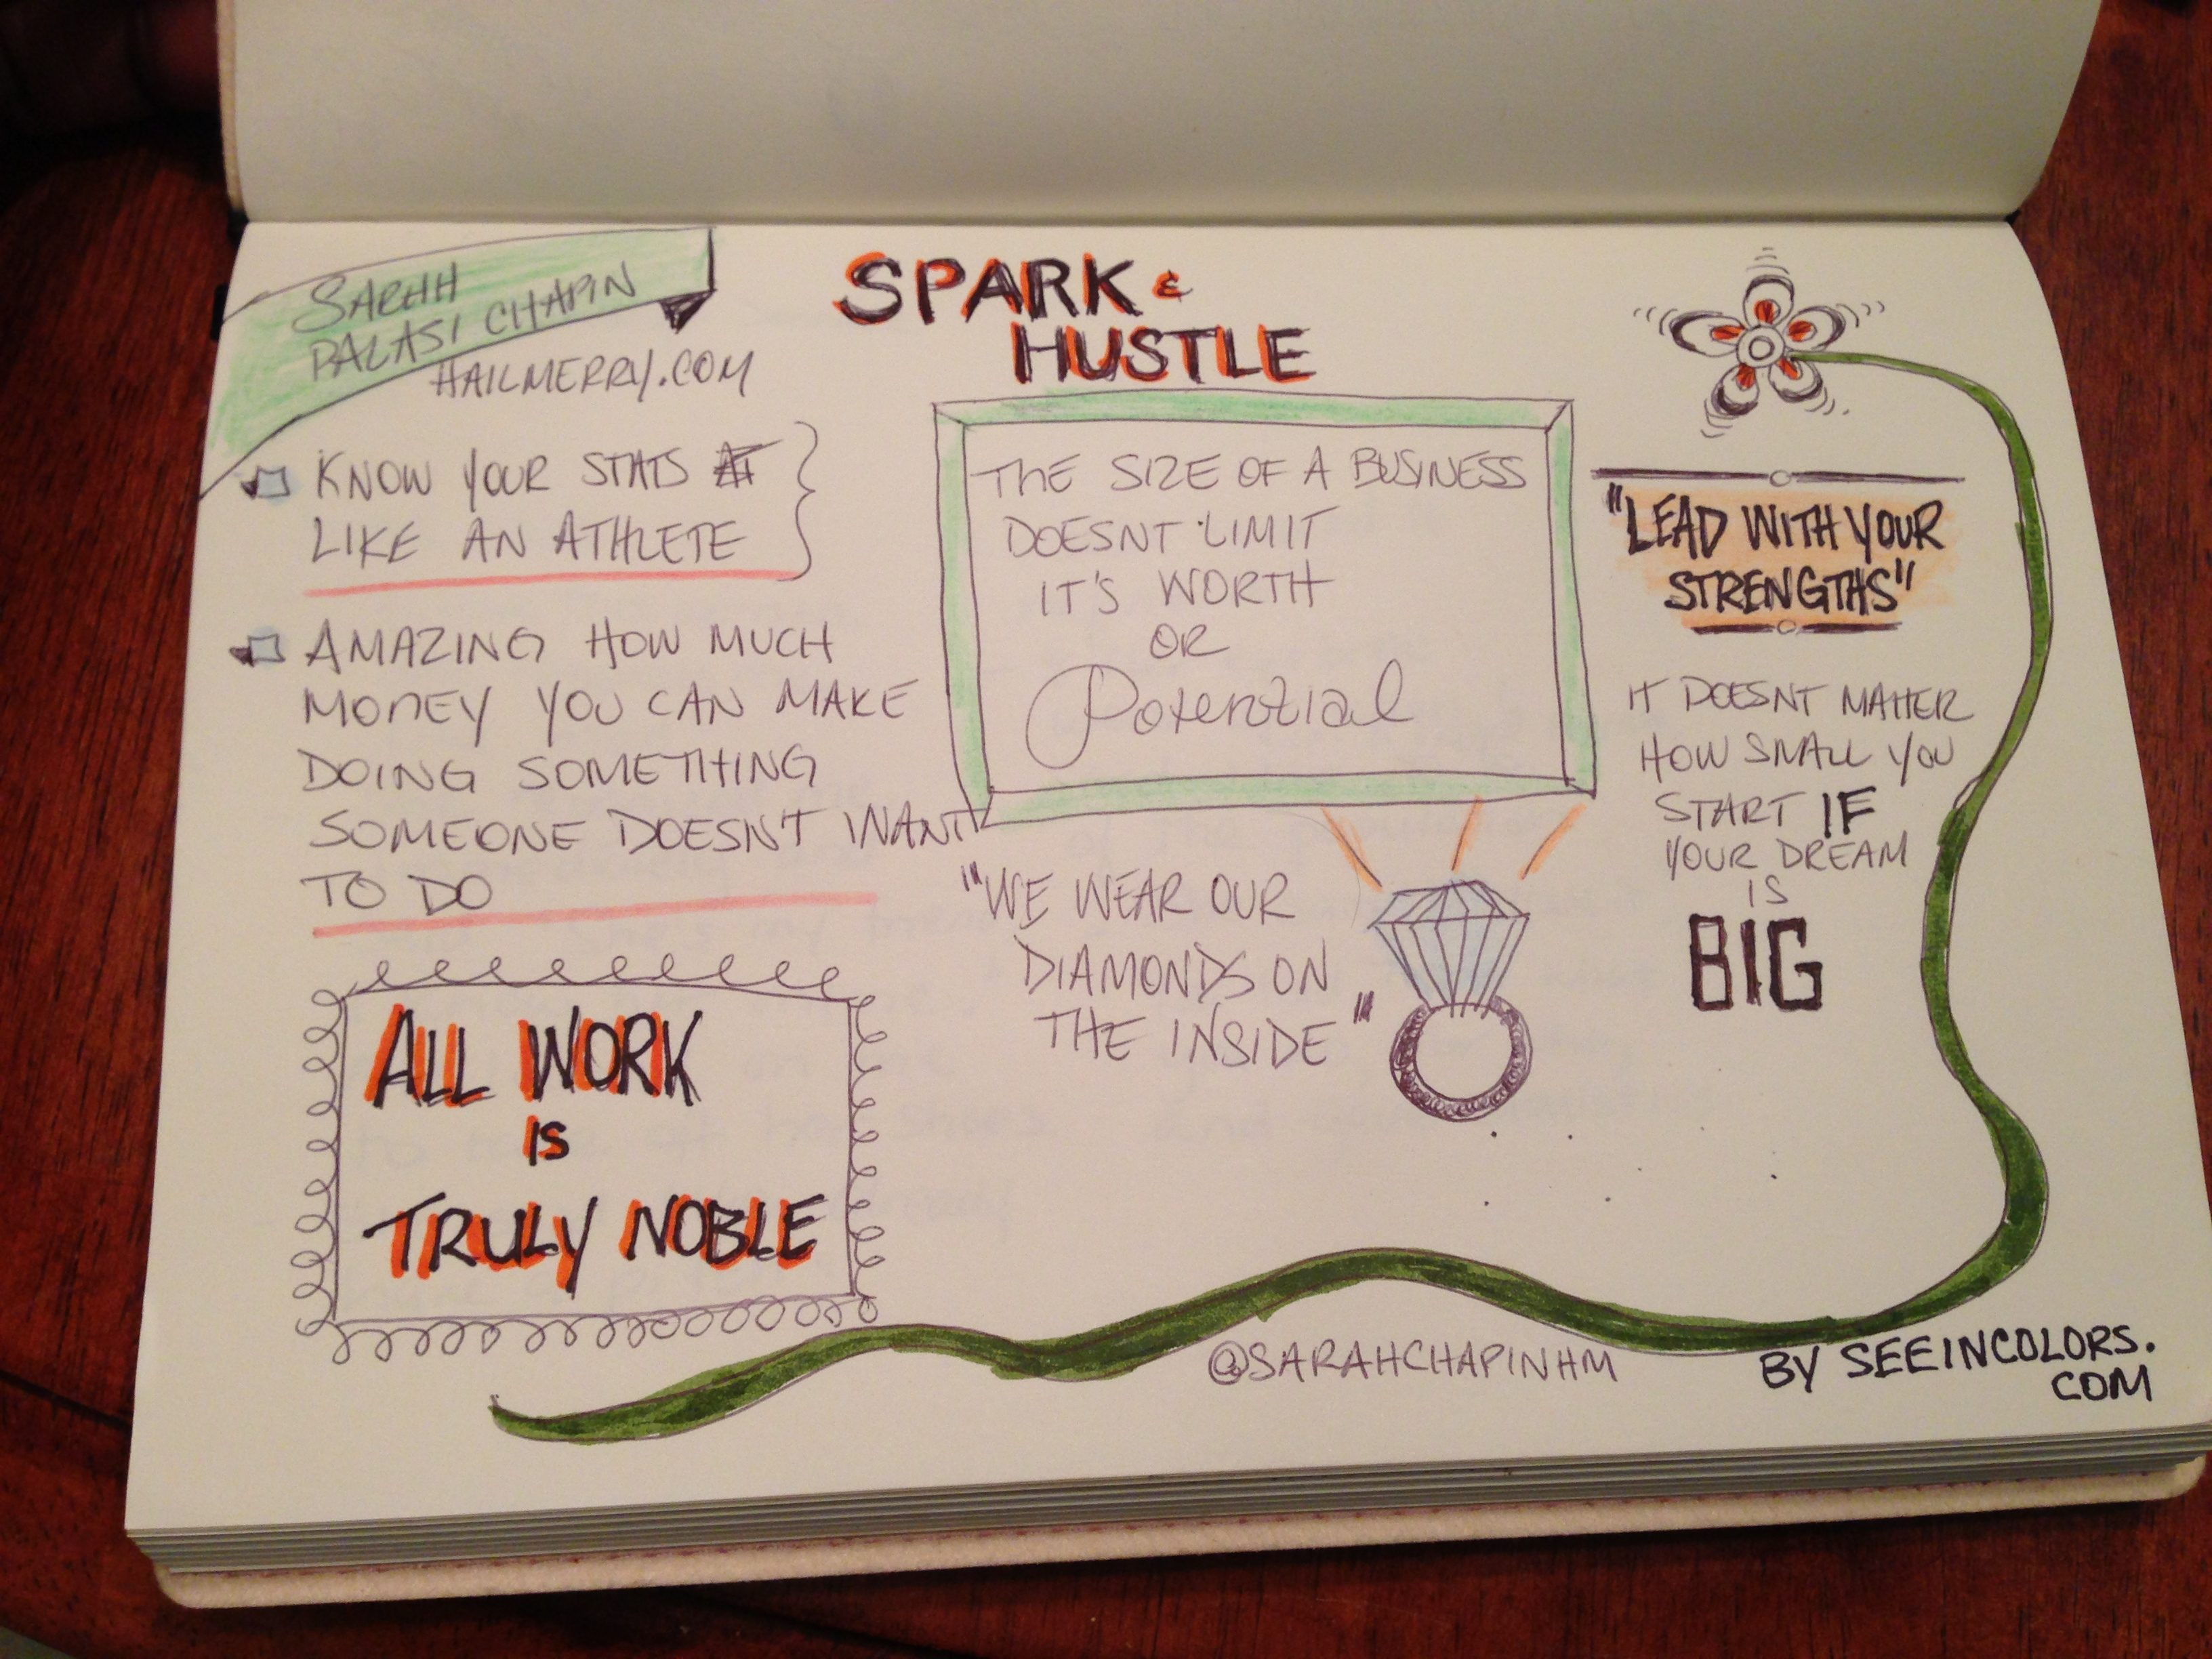 Hail Merry, Tory Johnson, Spark and Hustle, sketchnotes, Washington DC